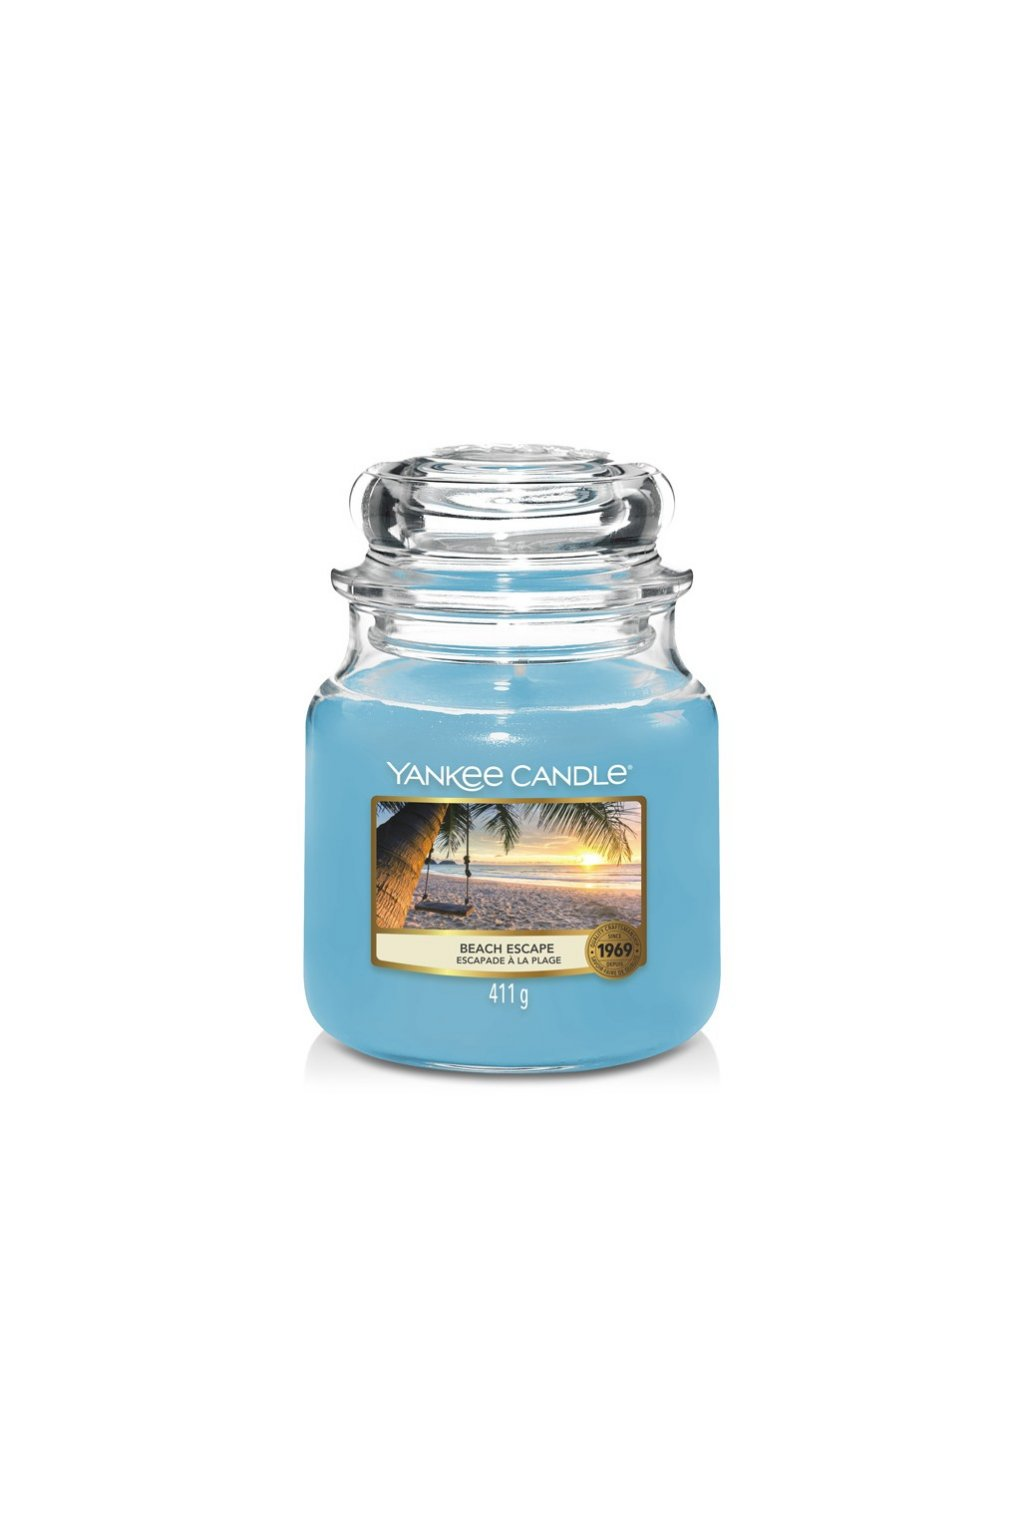 Yankee Candle Beach Escape 411g